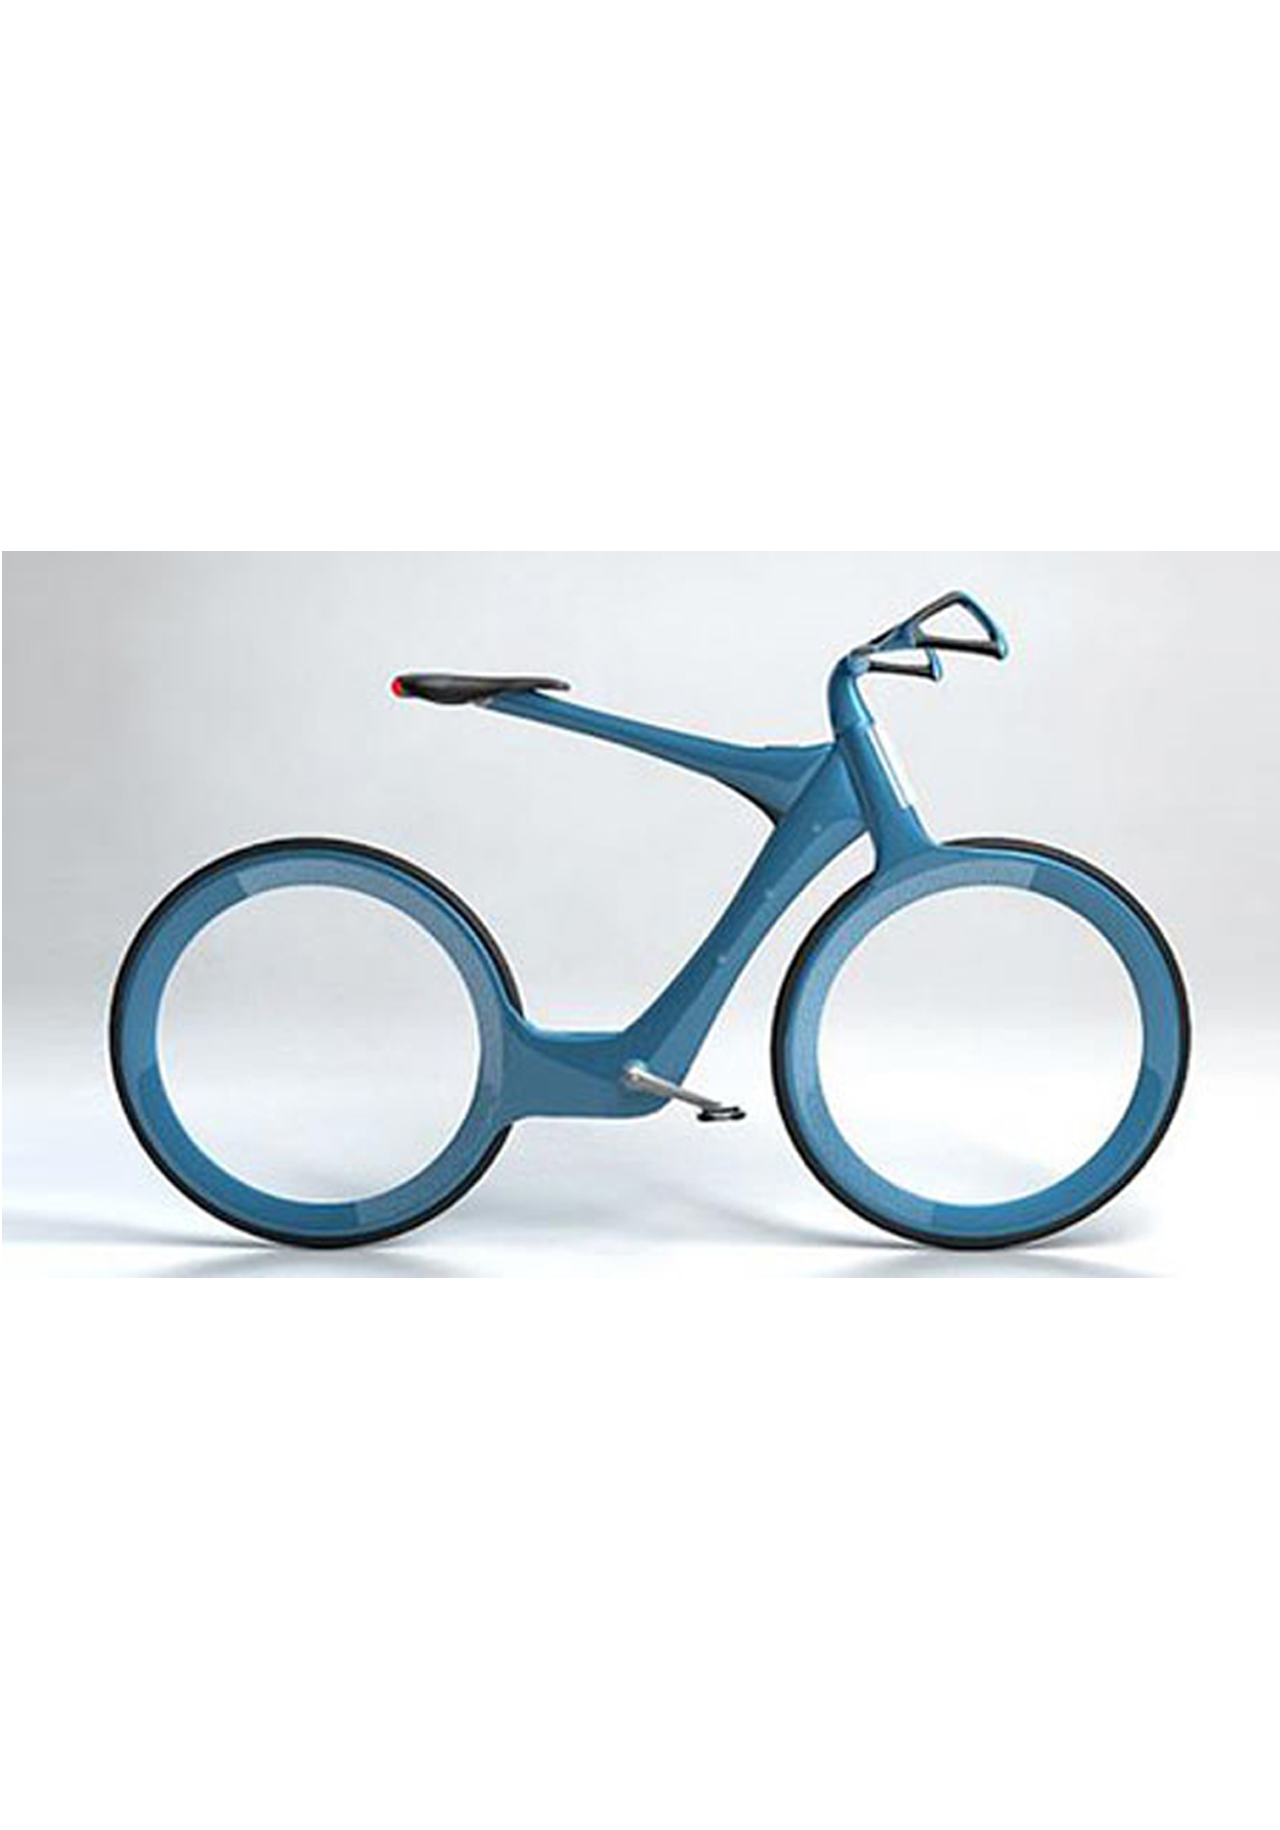 demo_shop_bicycle_0022